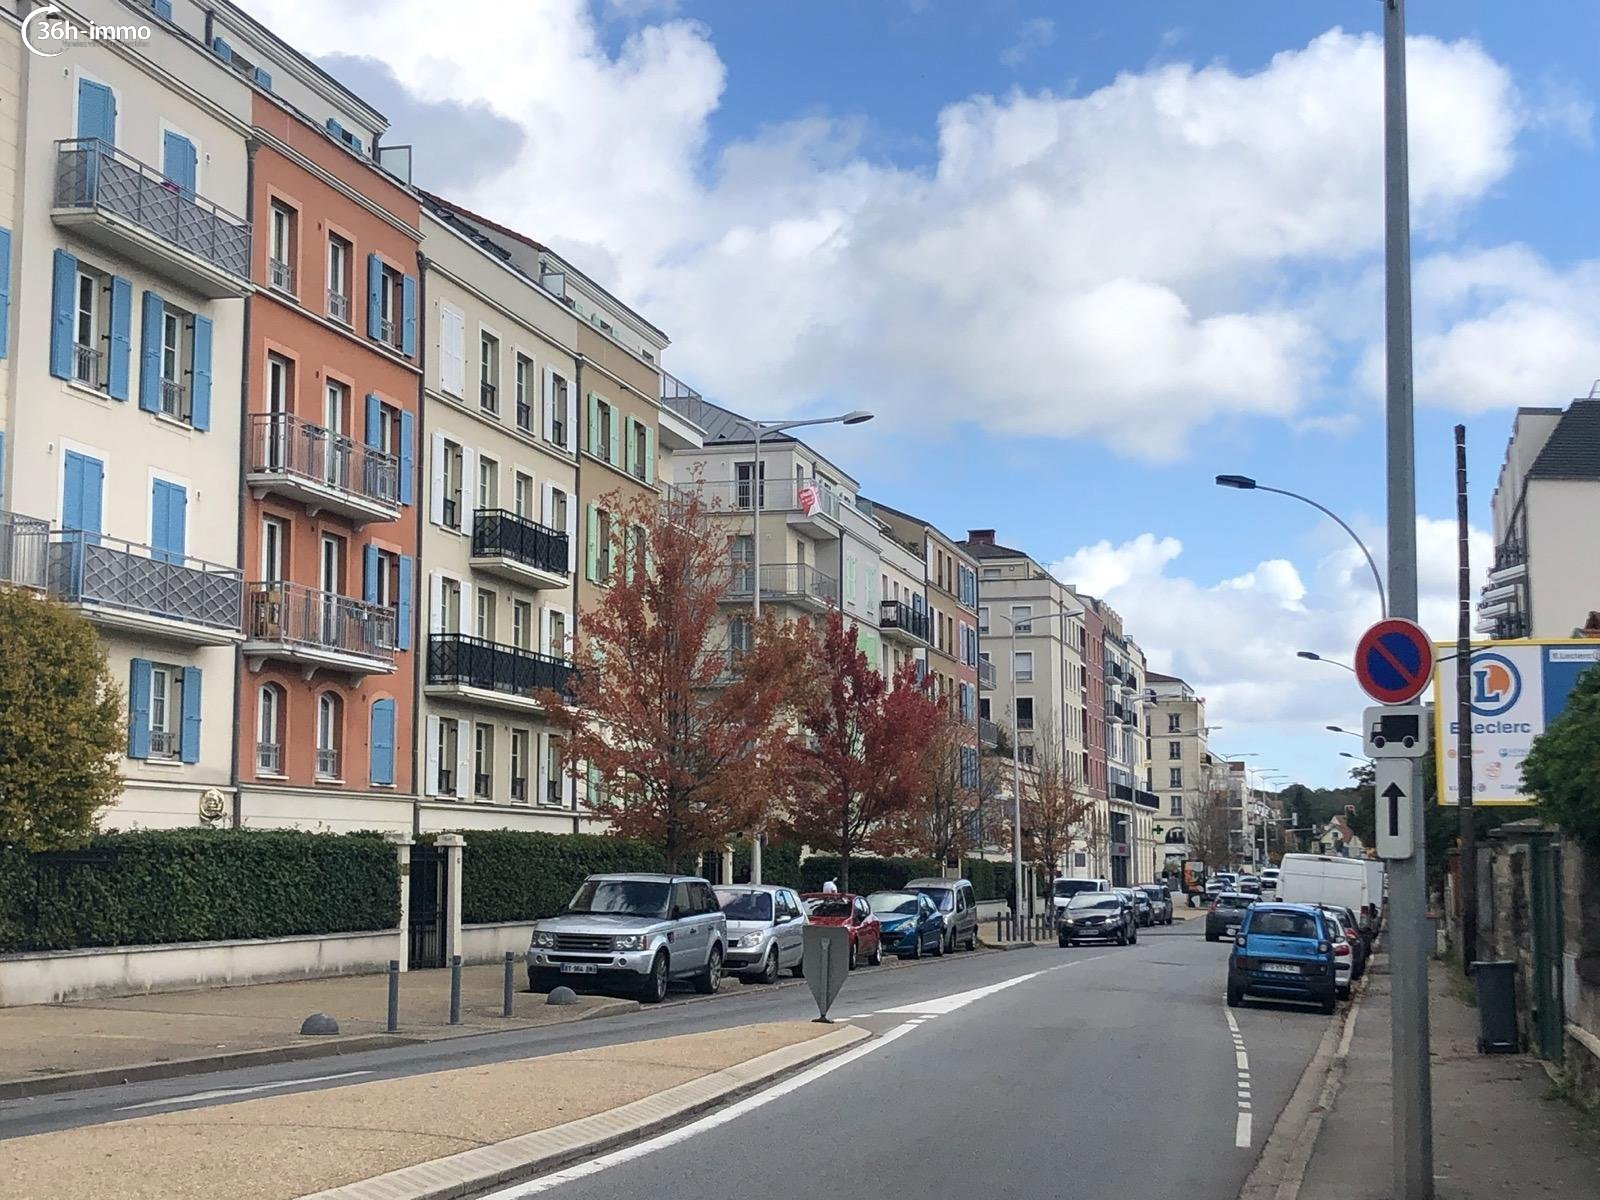 Appartement Poissy 78300 Yvelines 62 m<sup>2</sup> 3 pièces 270000 euros